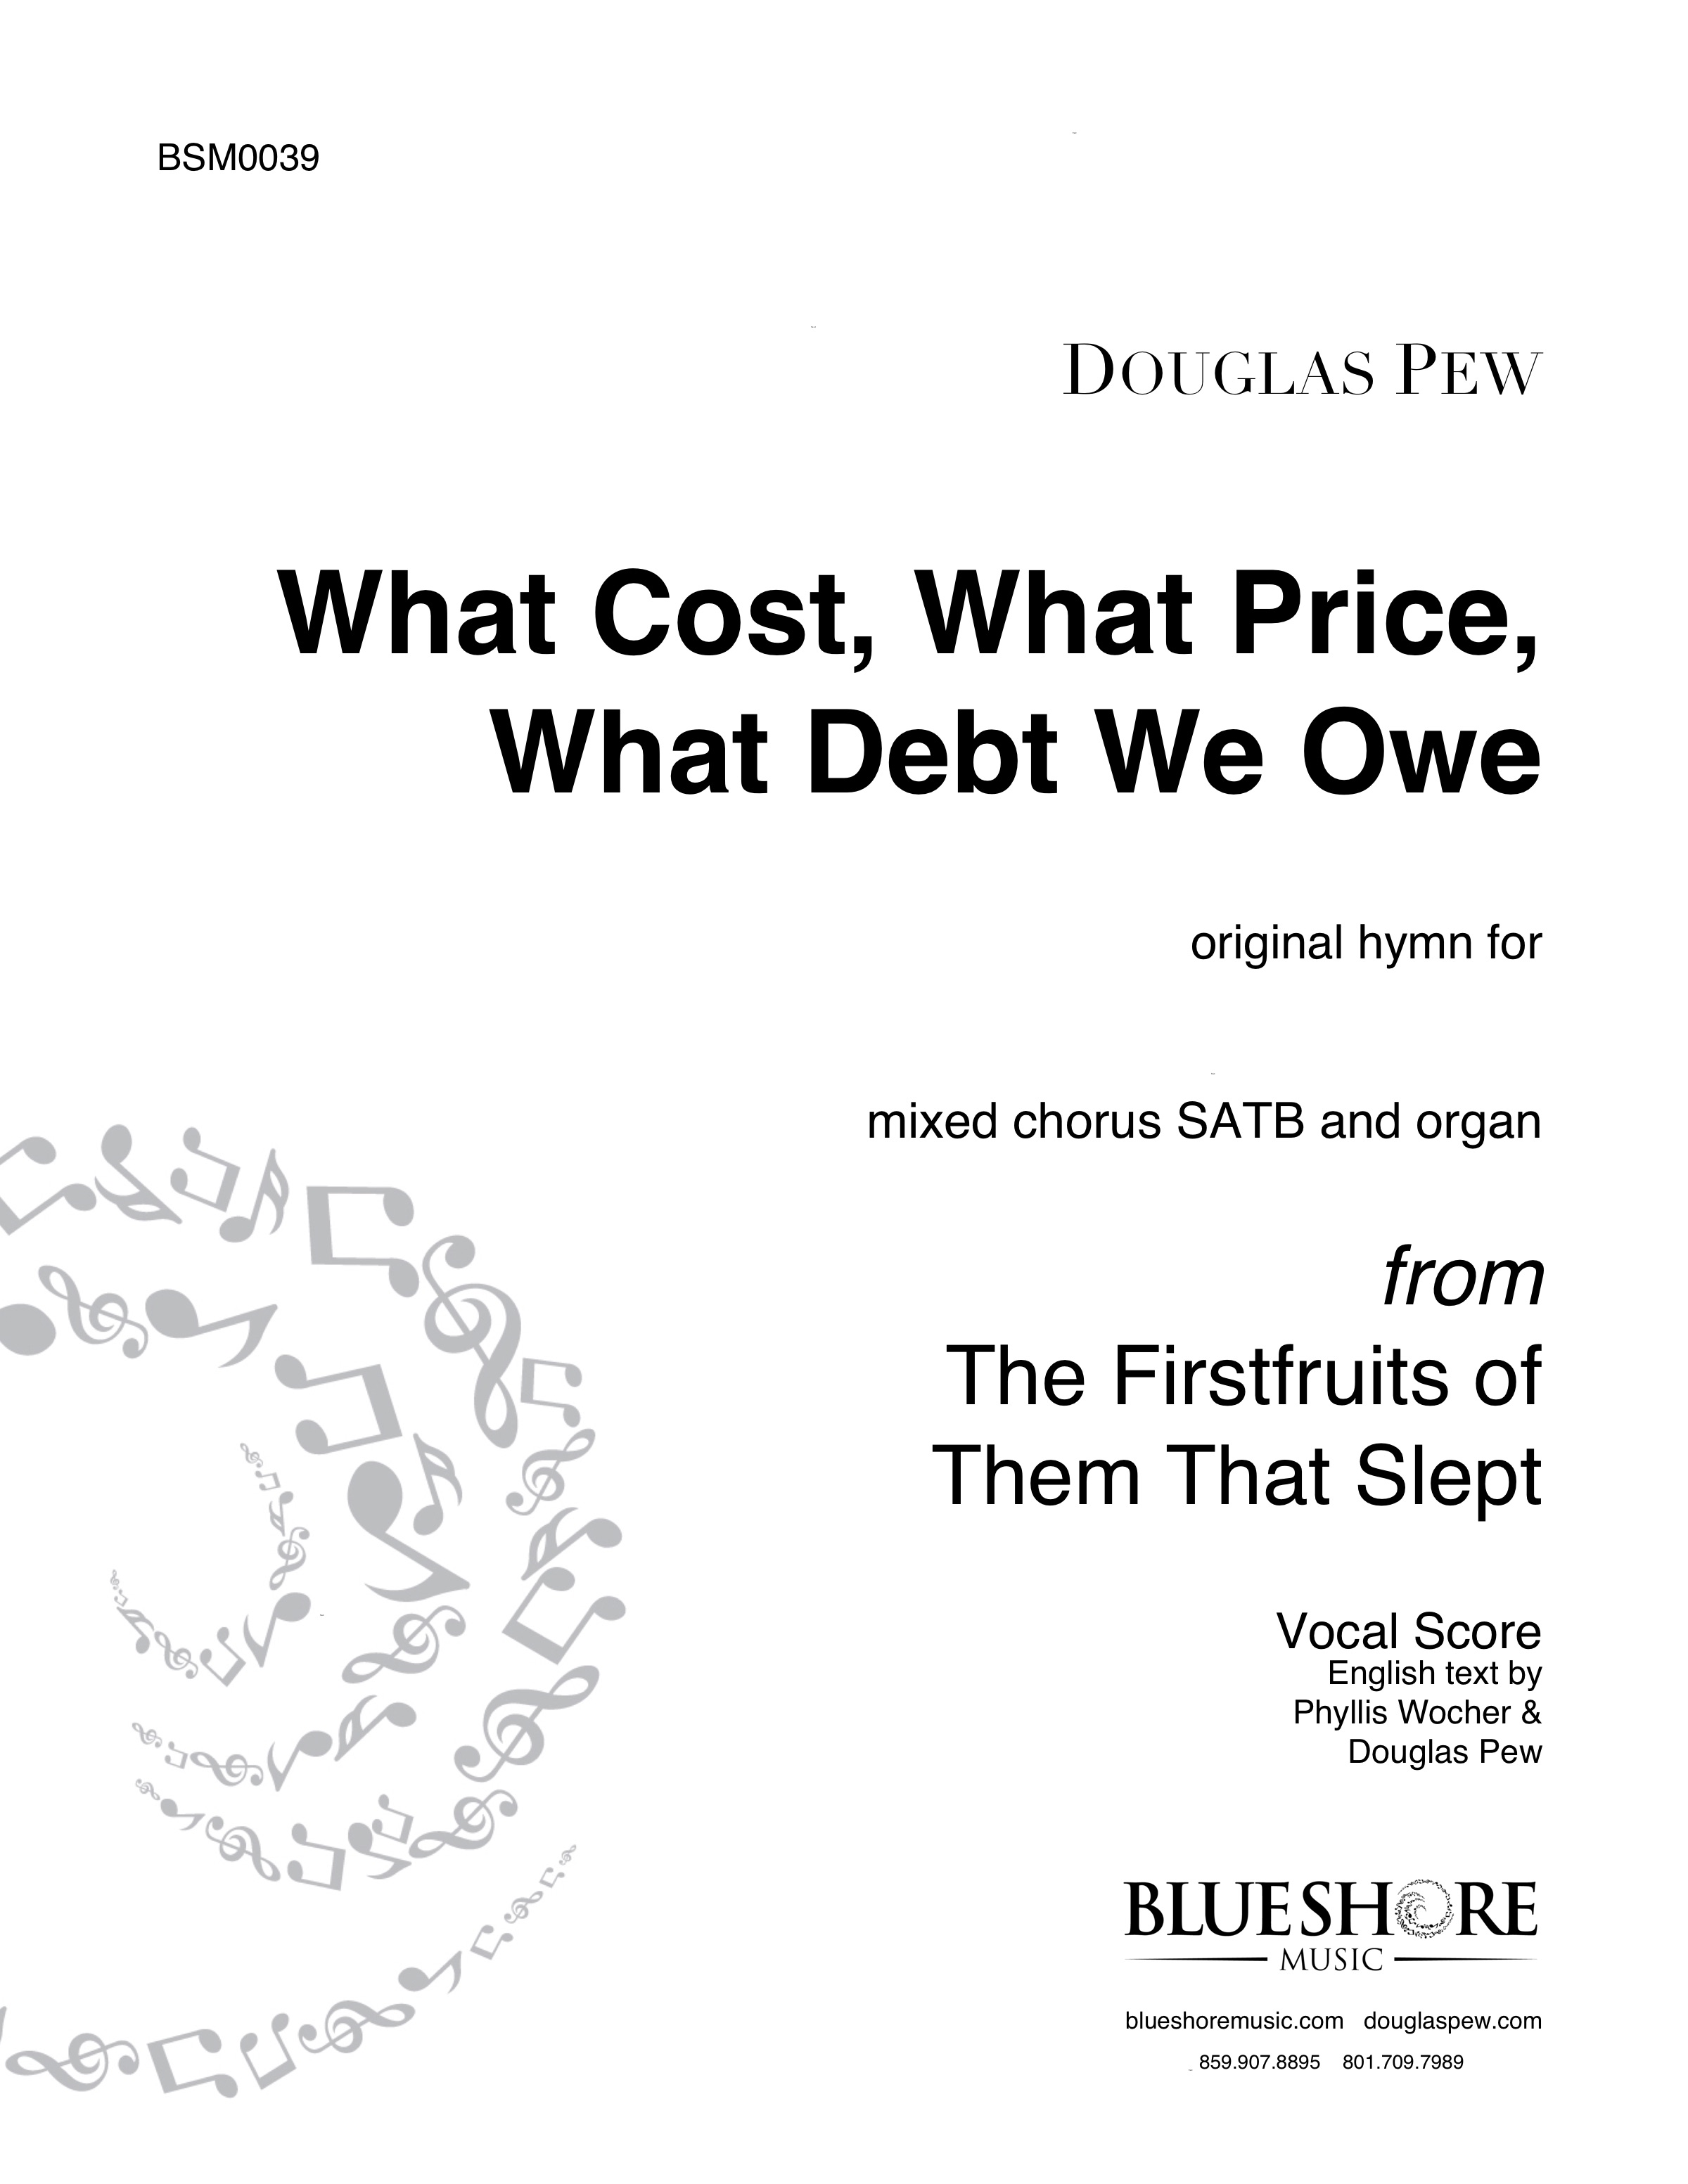 What Cost, What Price, What Debt We Owe,  Original Hymn for SATB and Organ